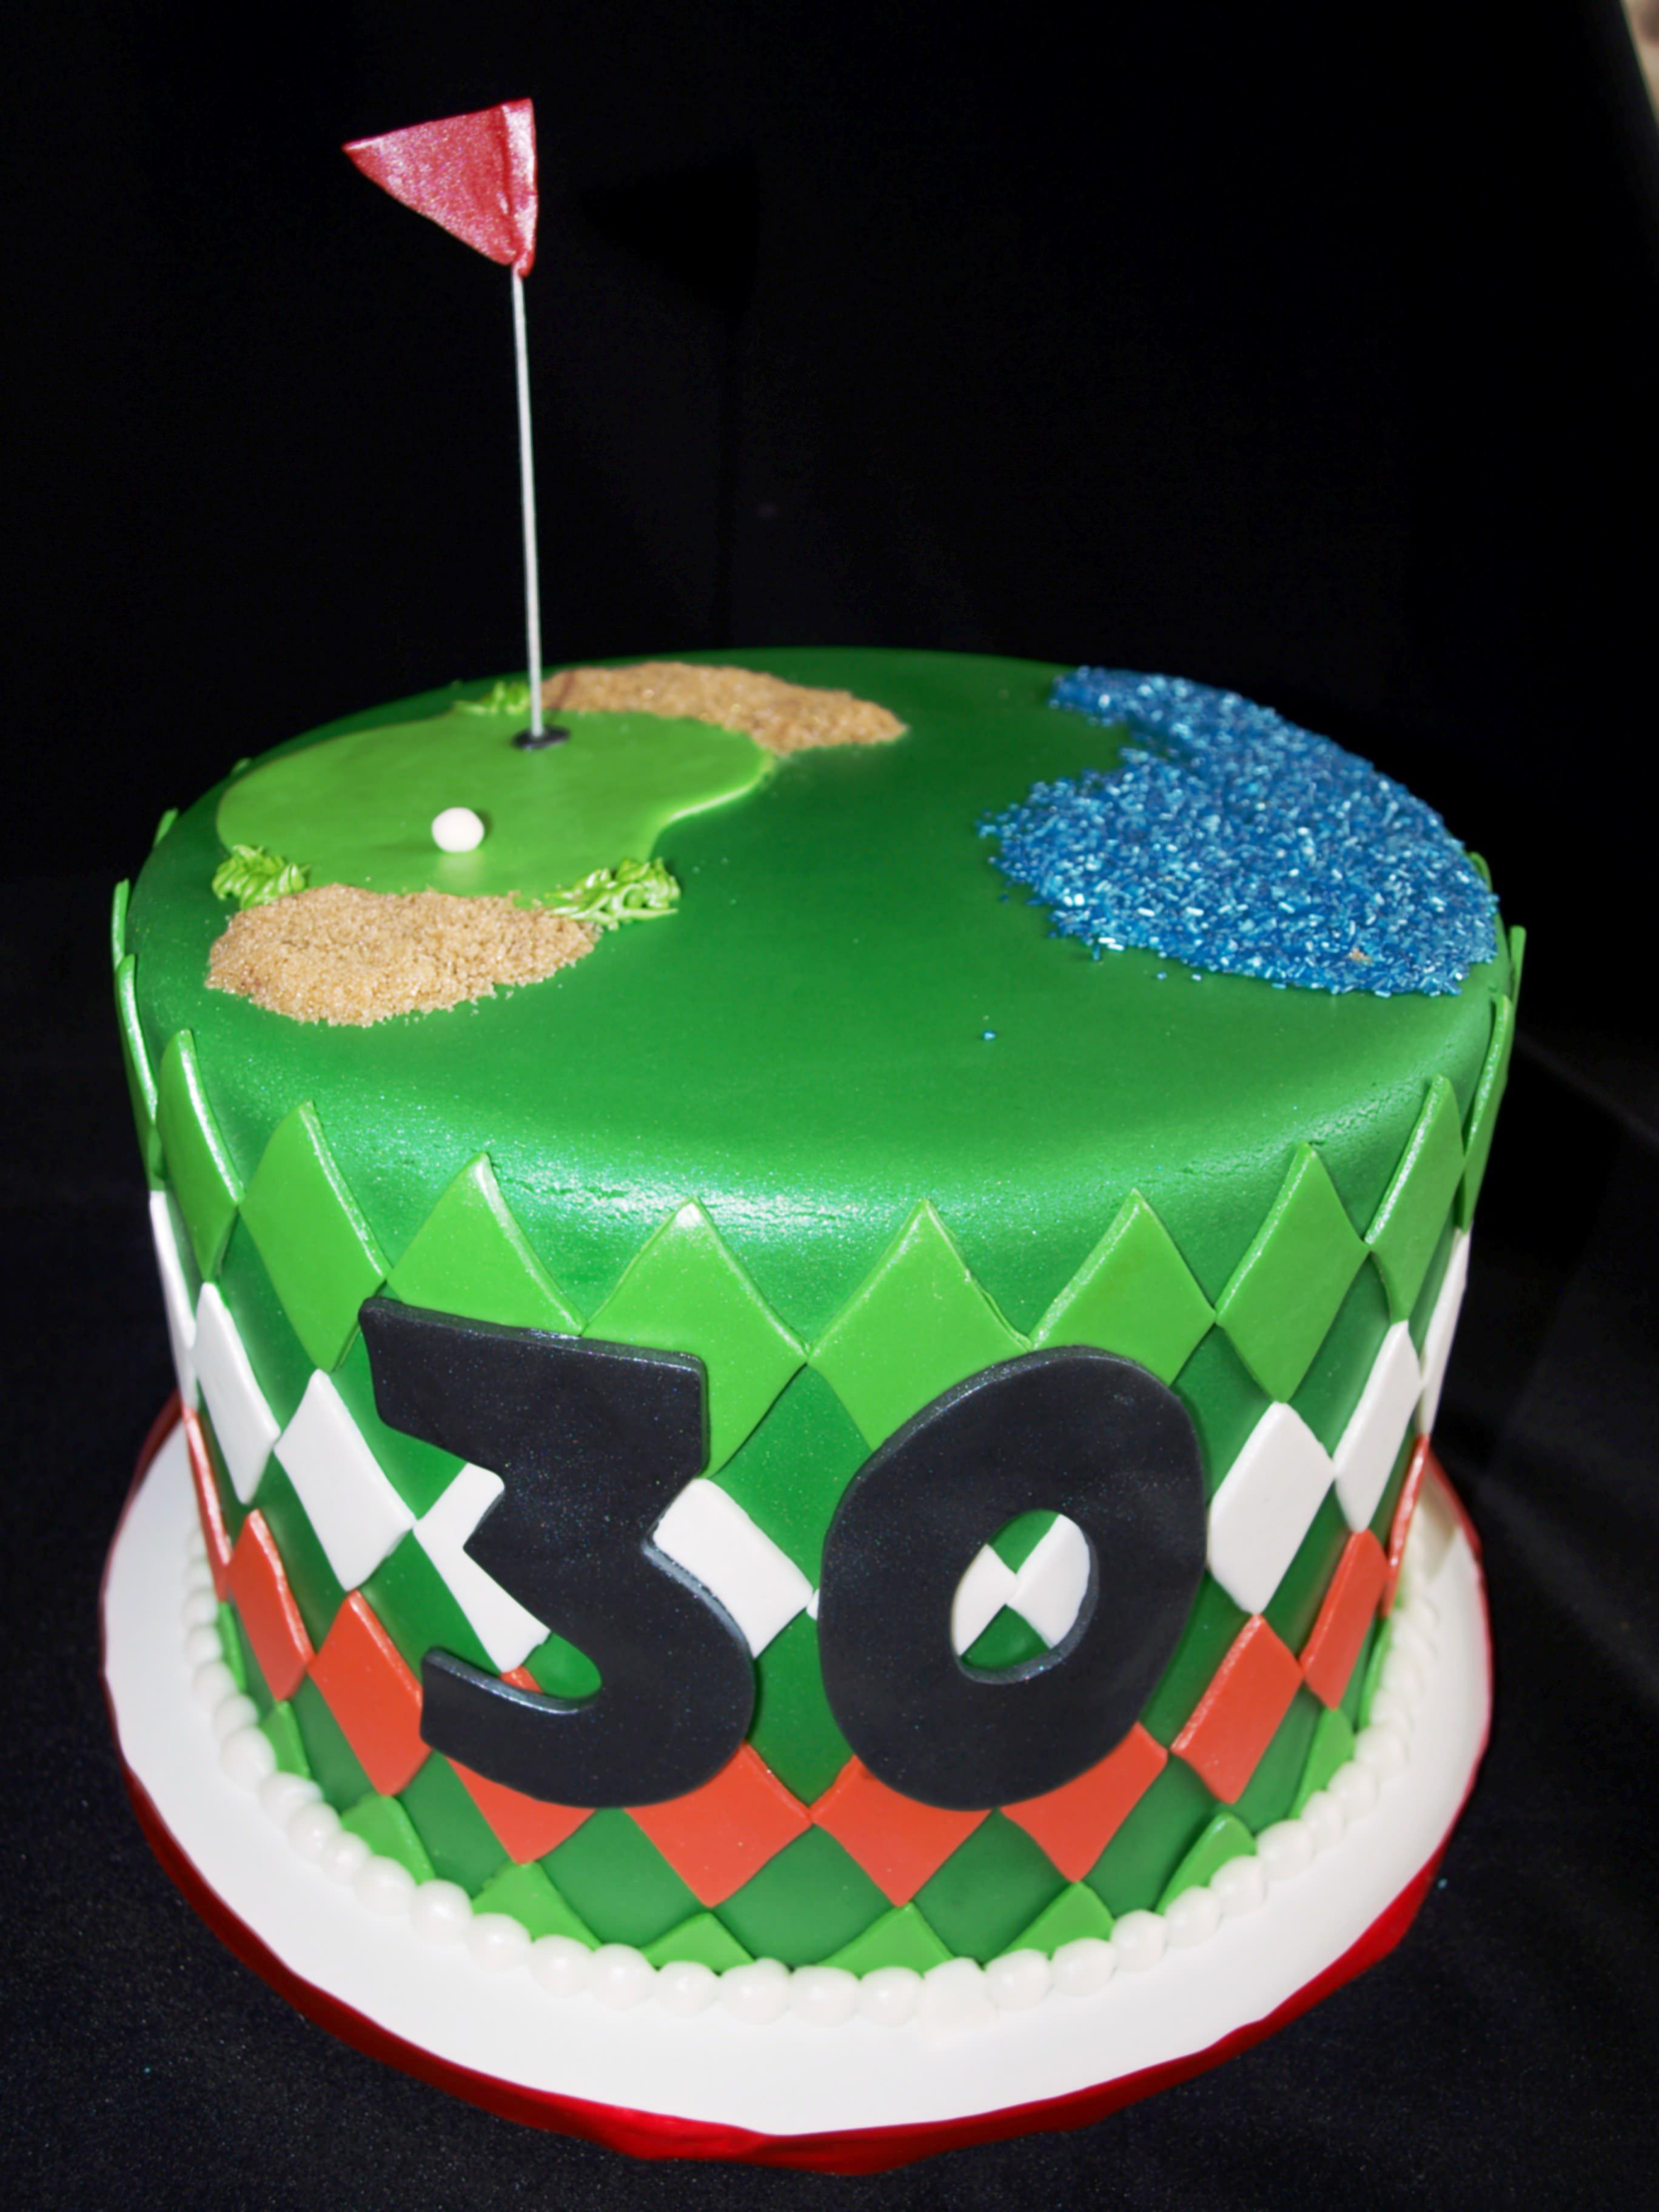 Birthday Cake Ideas For Men 30th Protoblogr Design